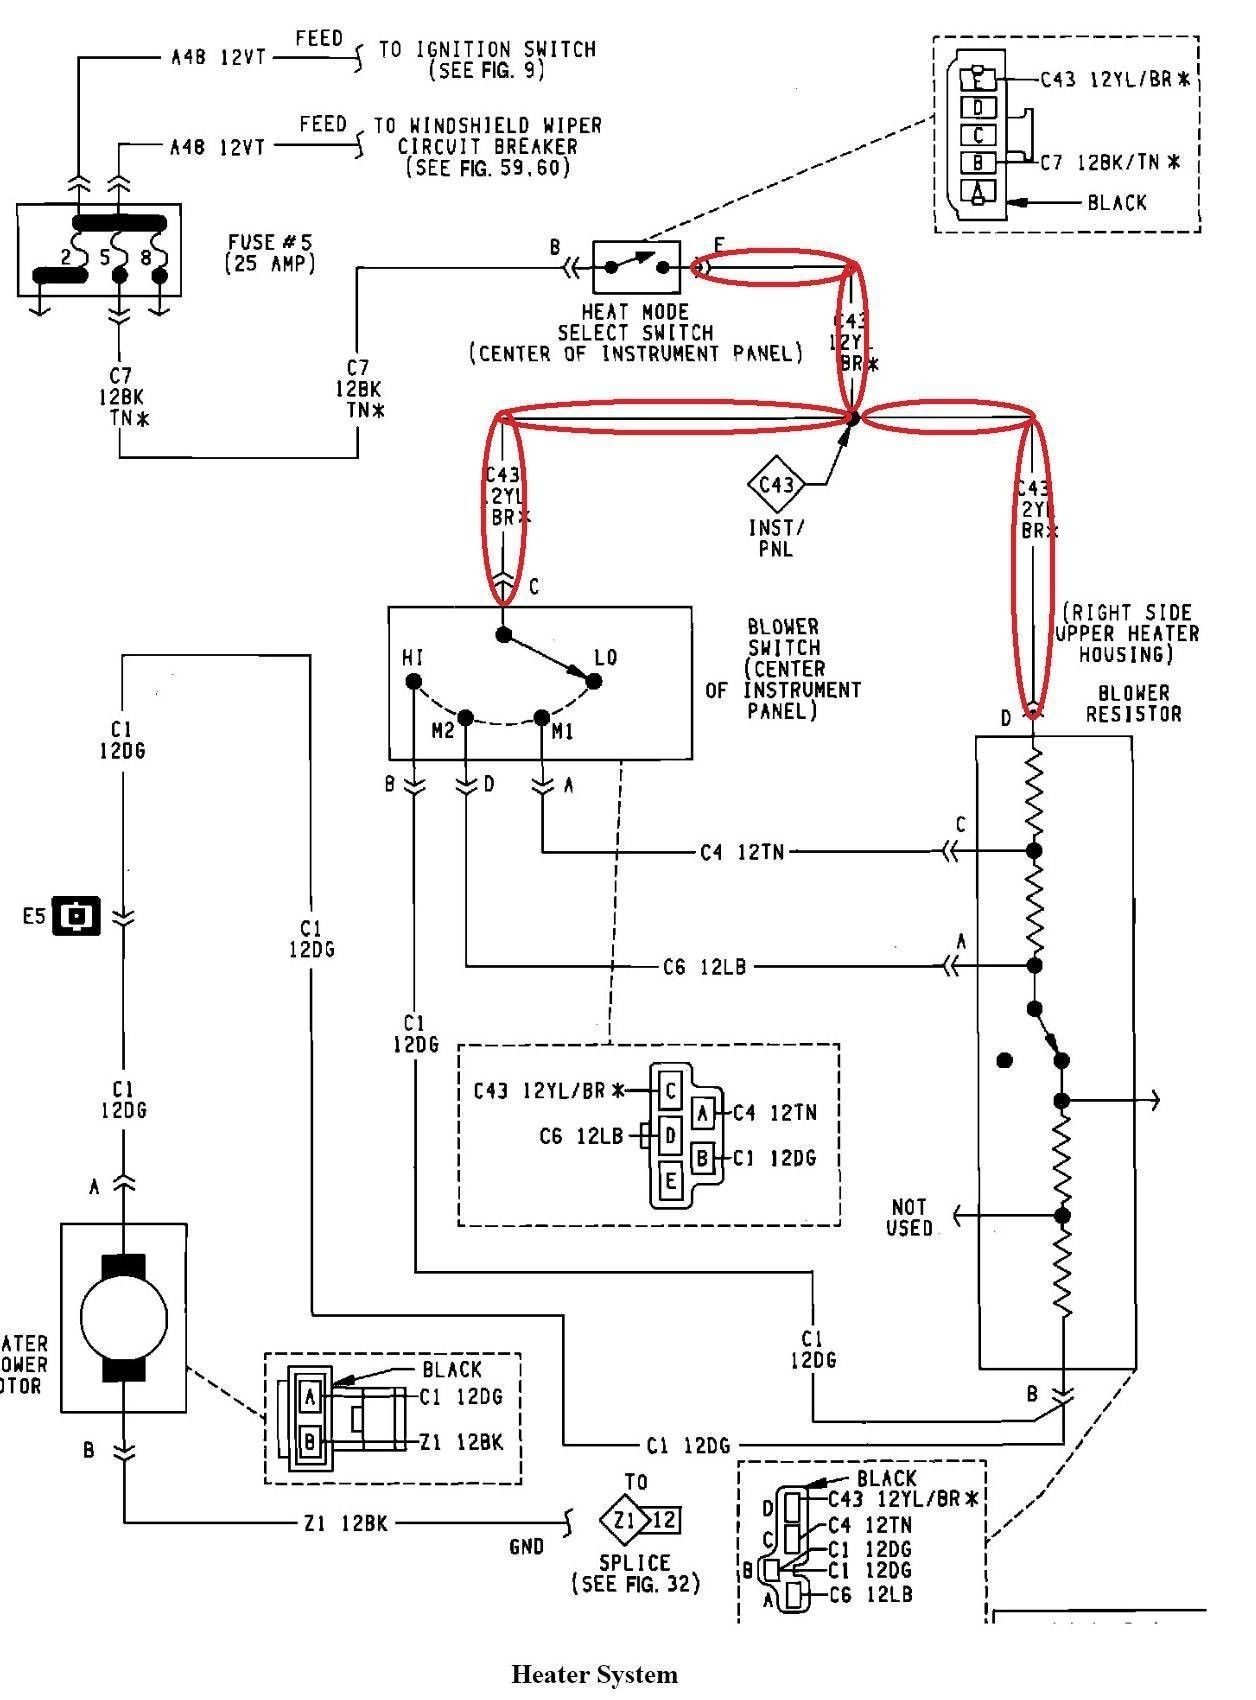 Scooter Wiring Diagram : scooter, wiring, diagram, Electric, Scooter, Wiring, Diagram, Unique, Motorcycle, Wiring,, Scooter,